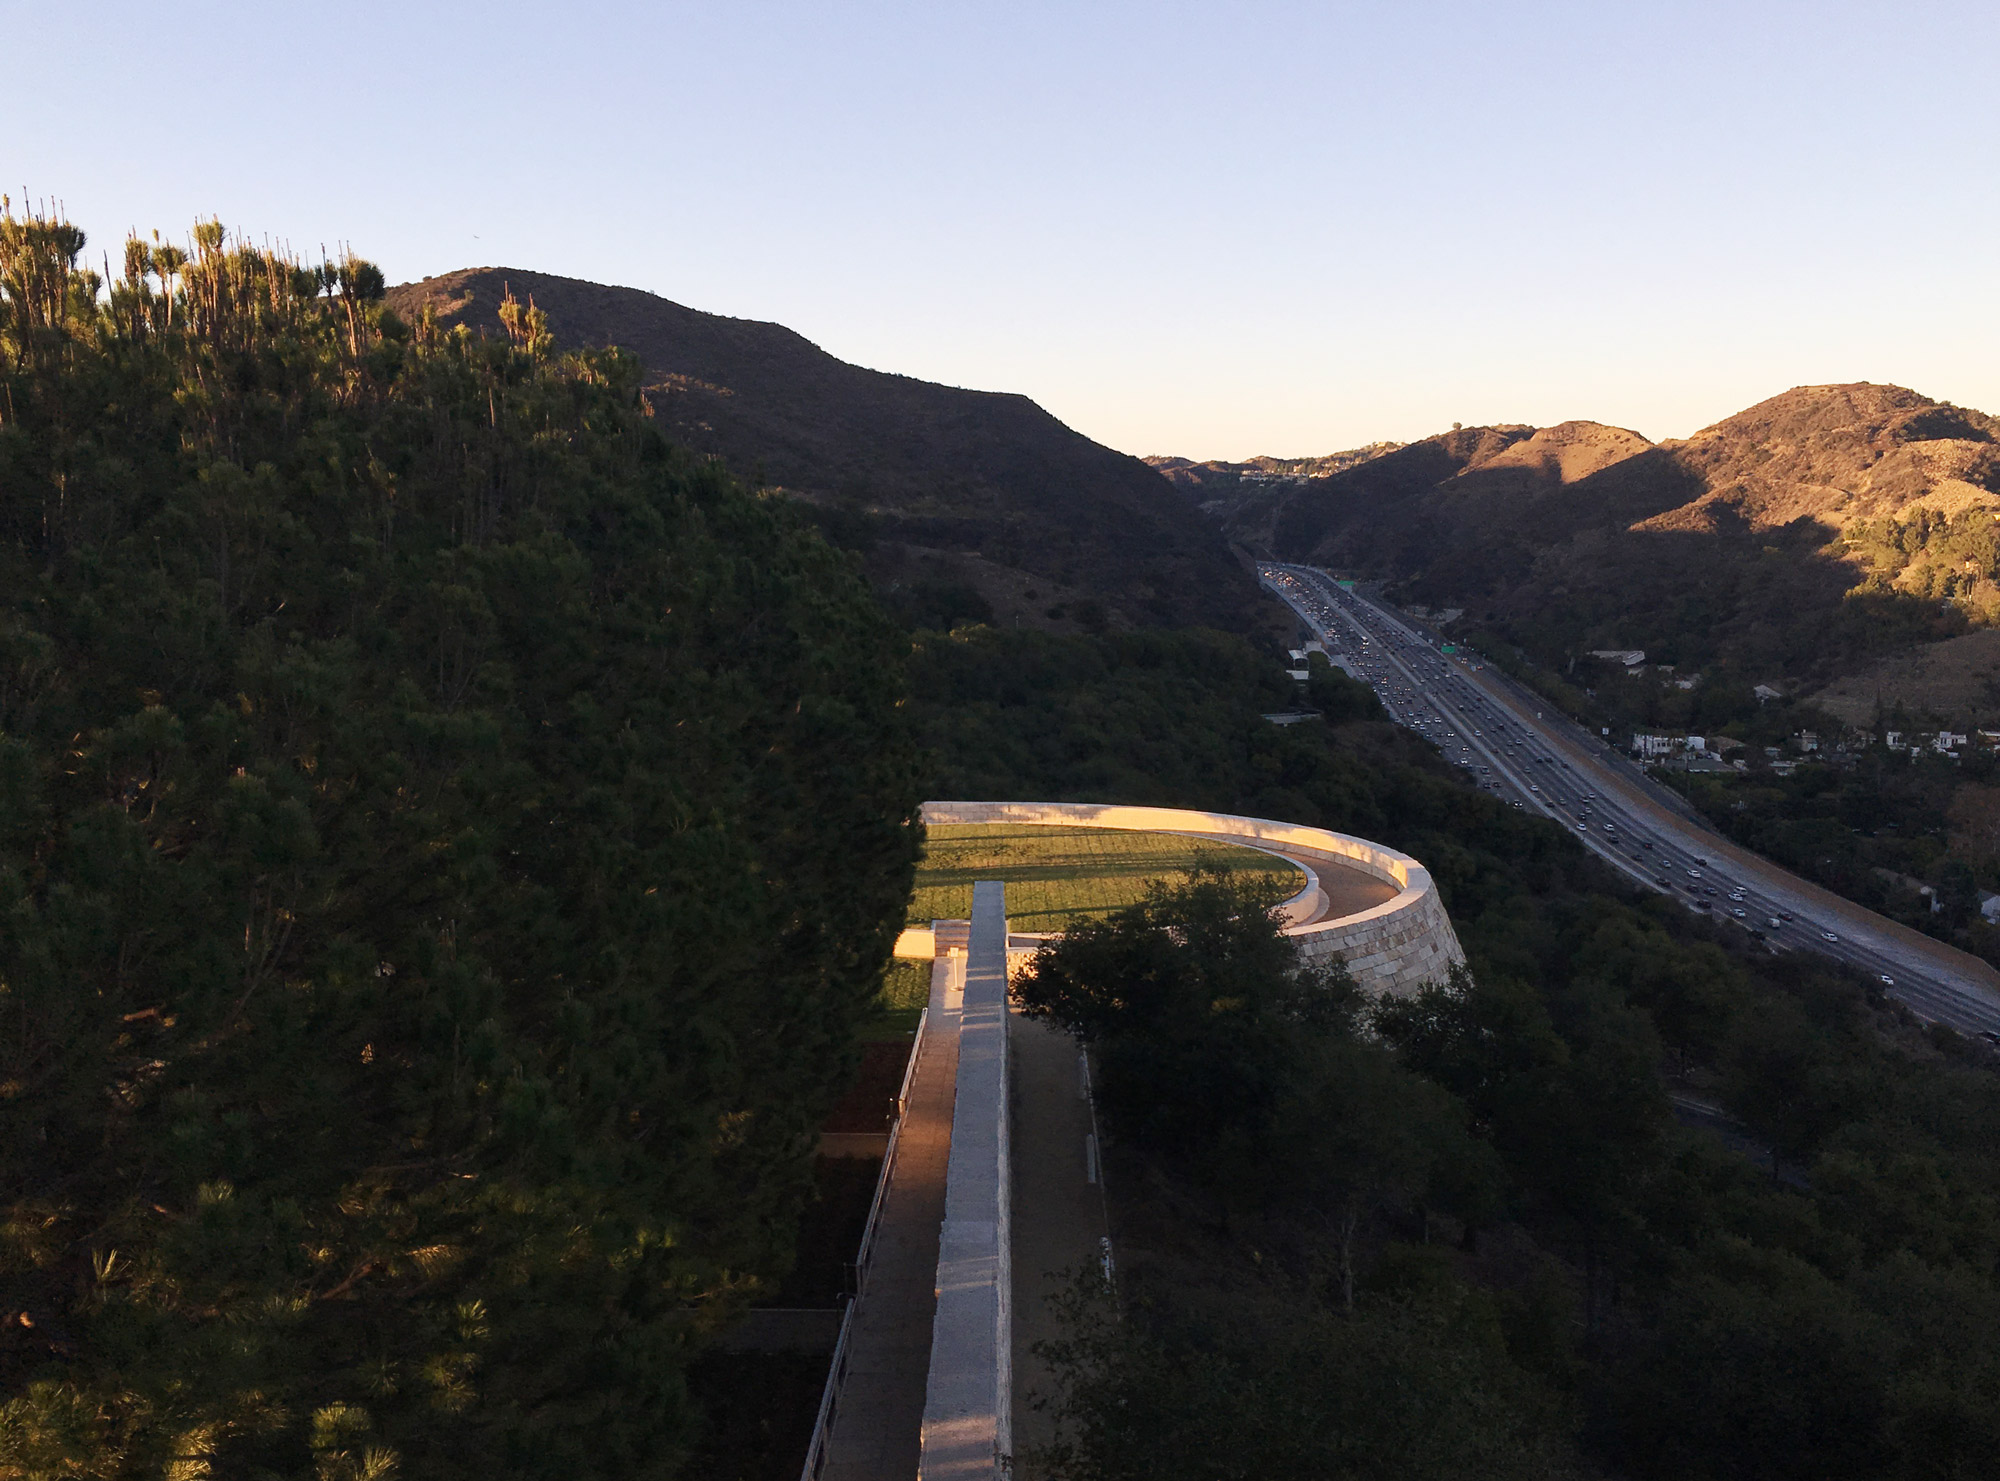 urbanbacklog-los-angeles-getty-museum-6.jpg